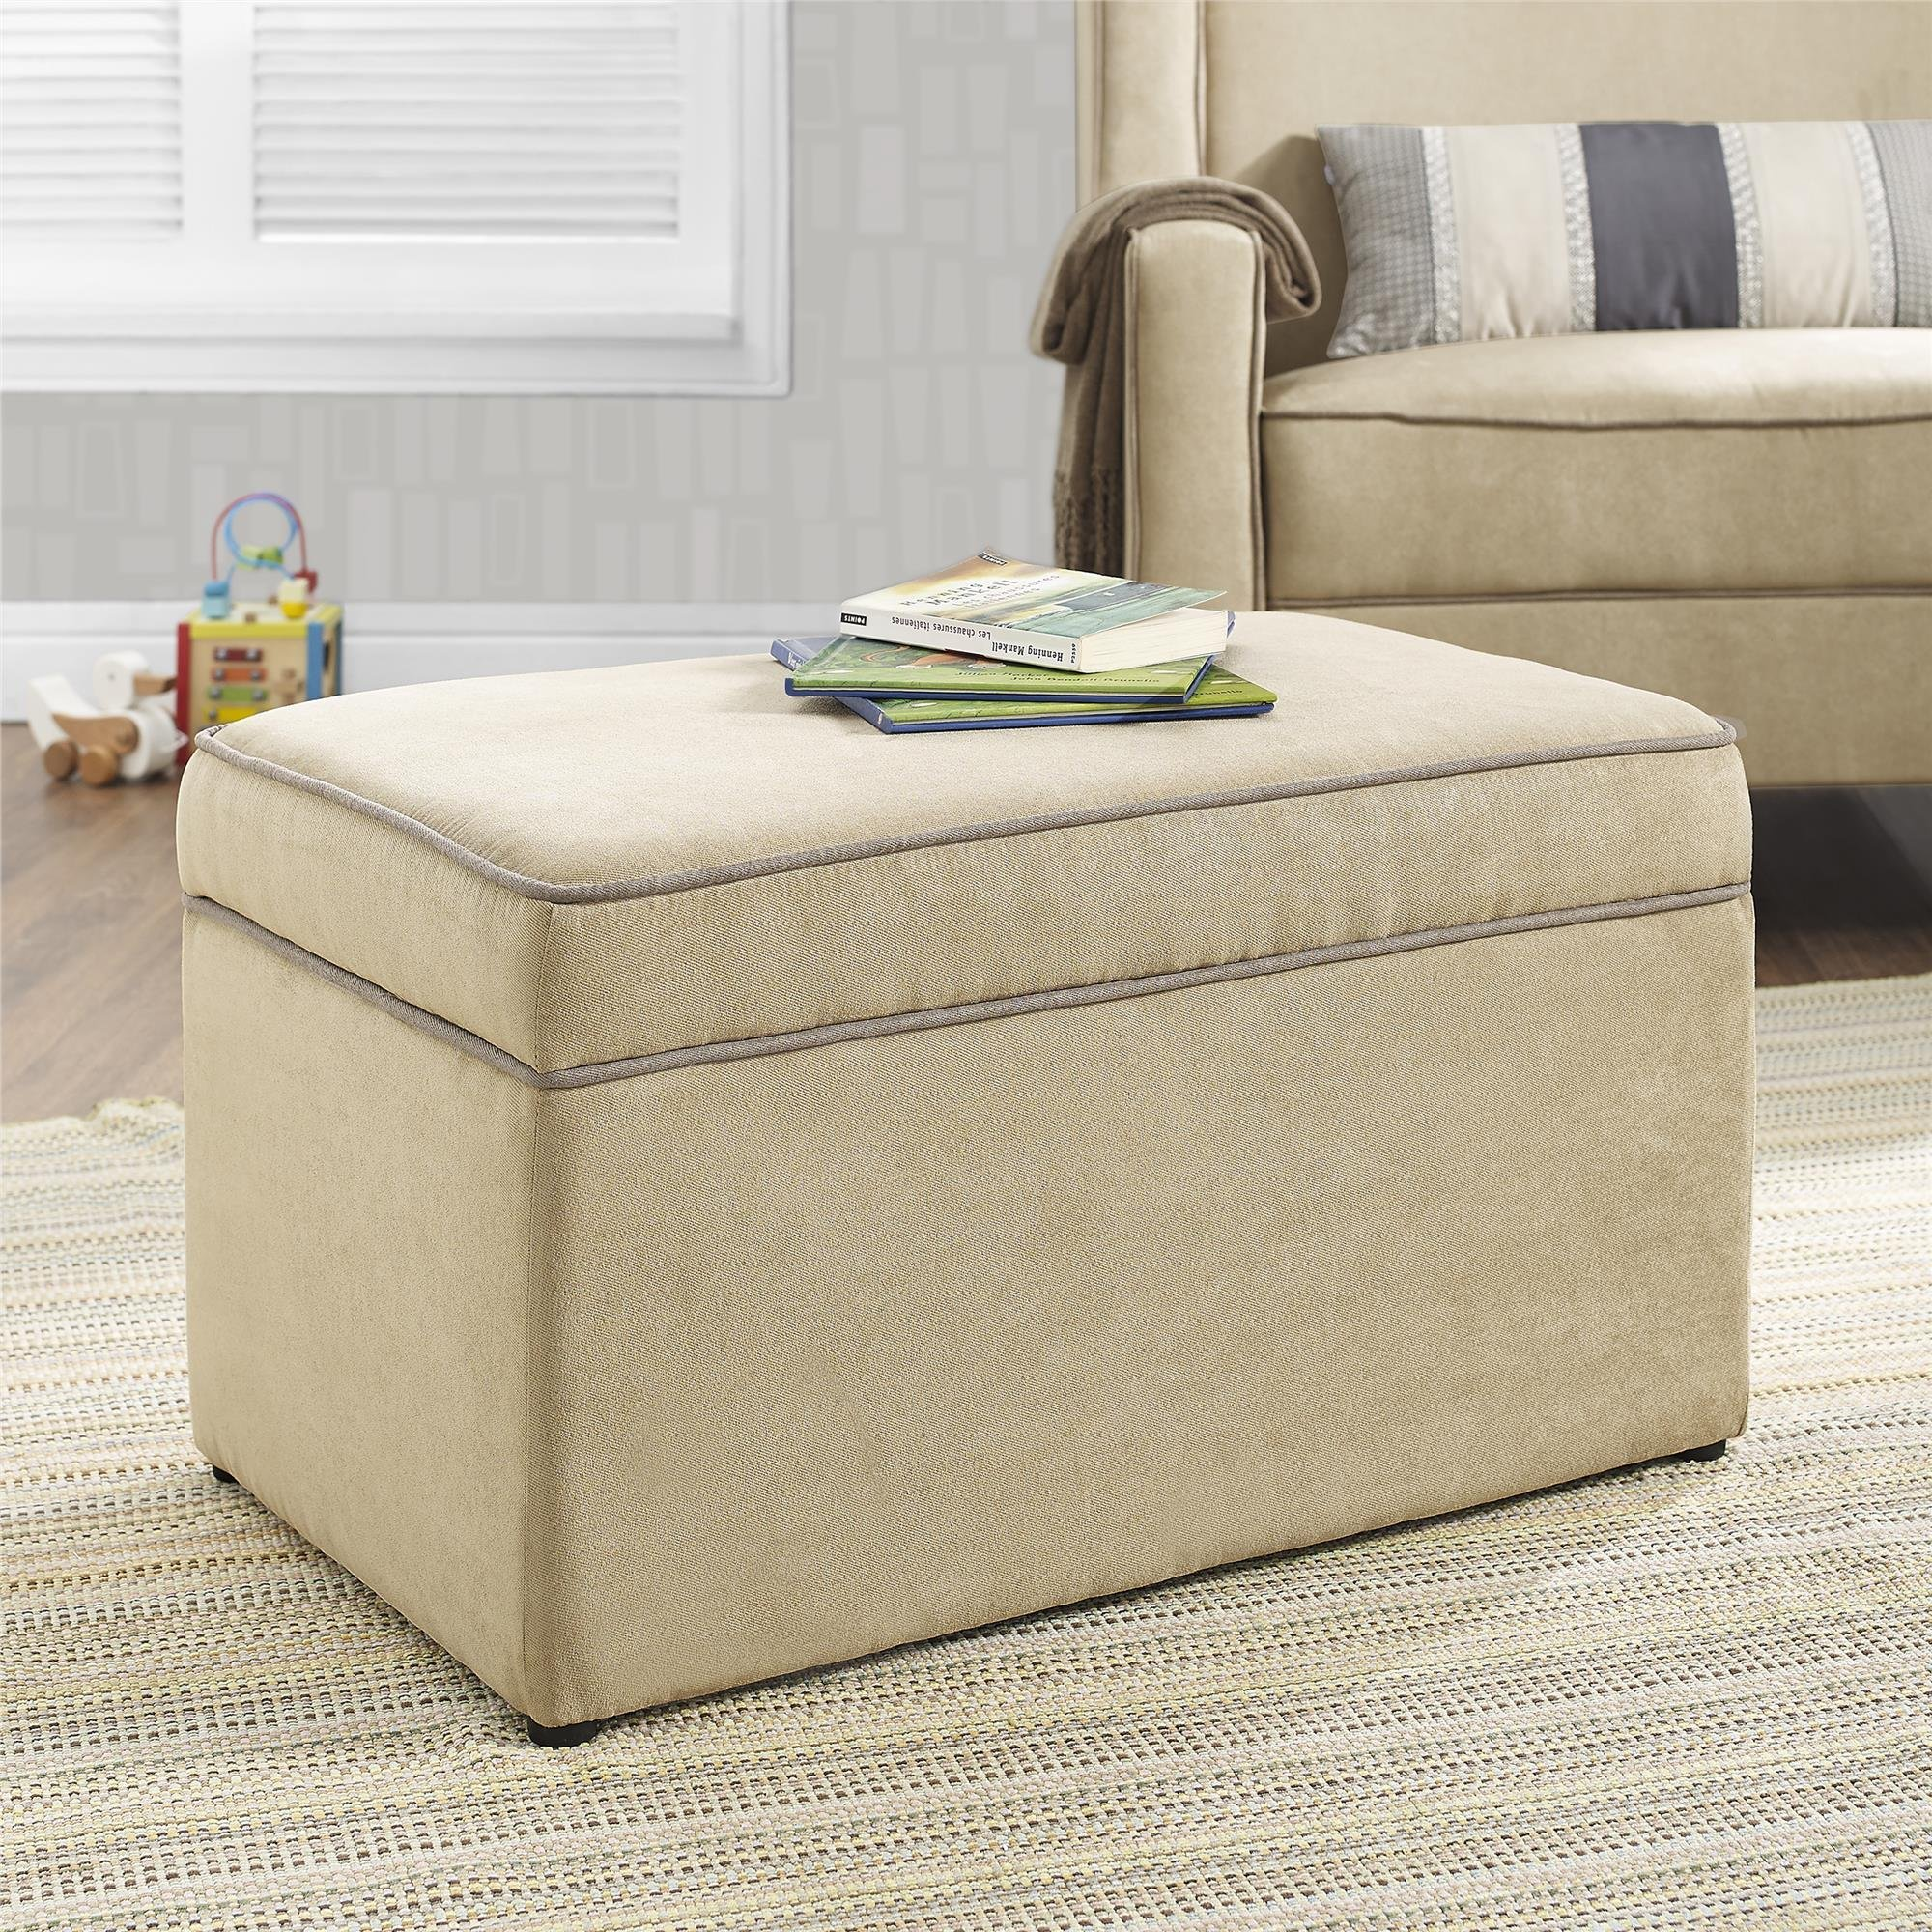 Baby Relax The Hadley Nursery Storage Ottoman for Baby Gliders, Beige